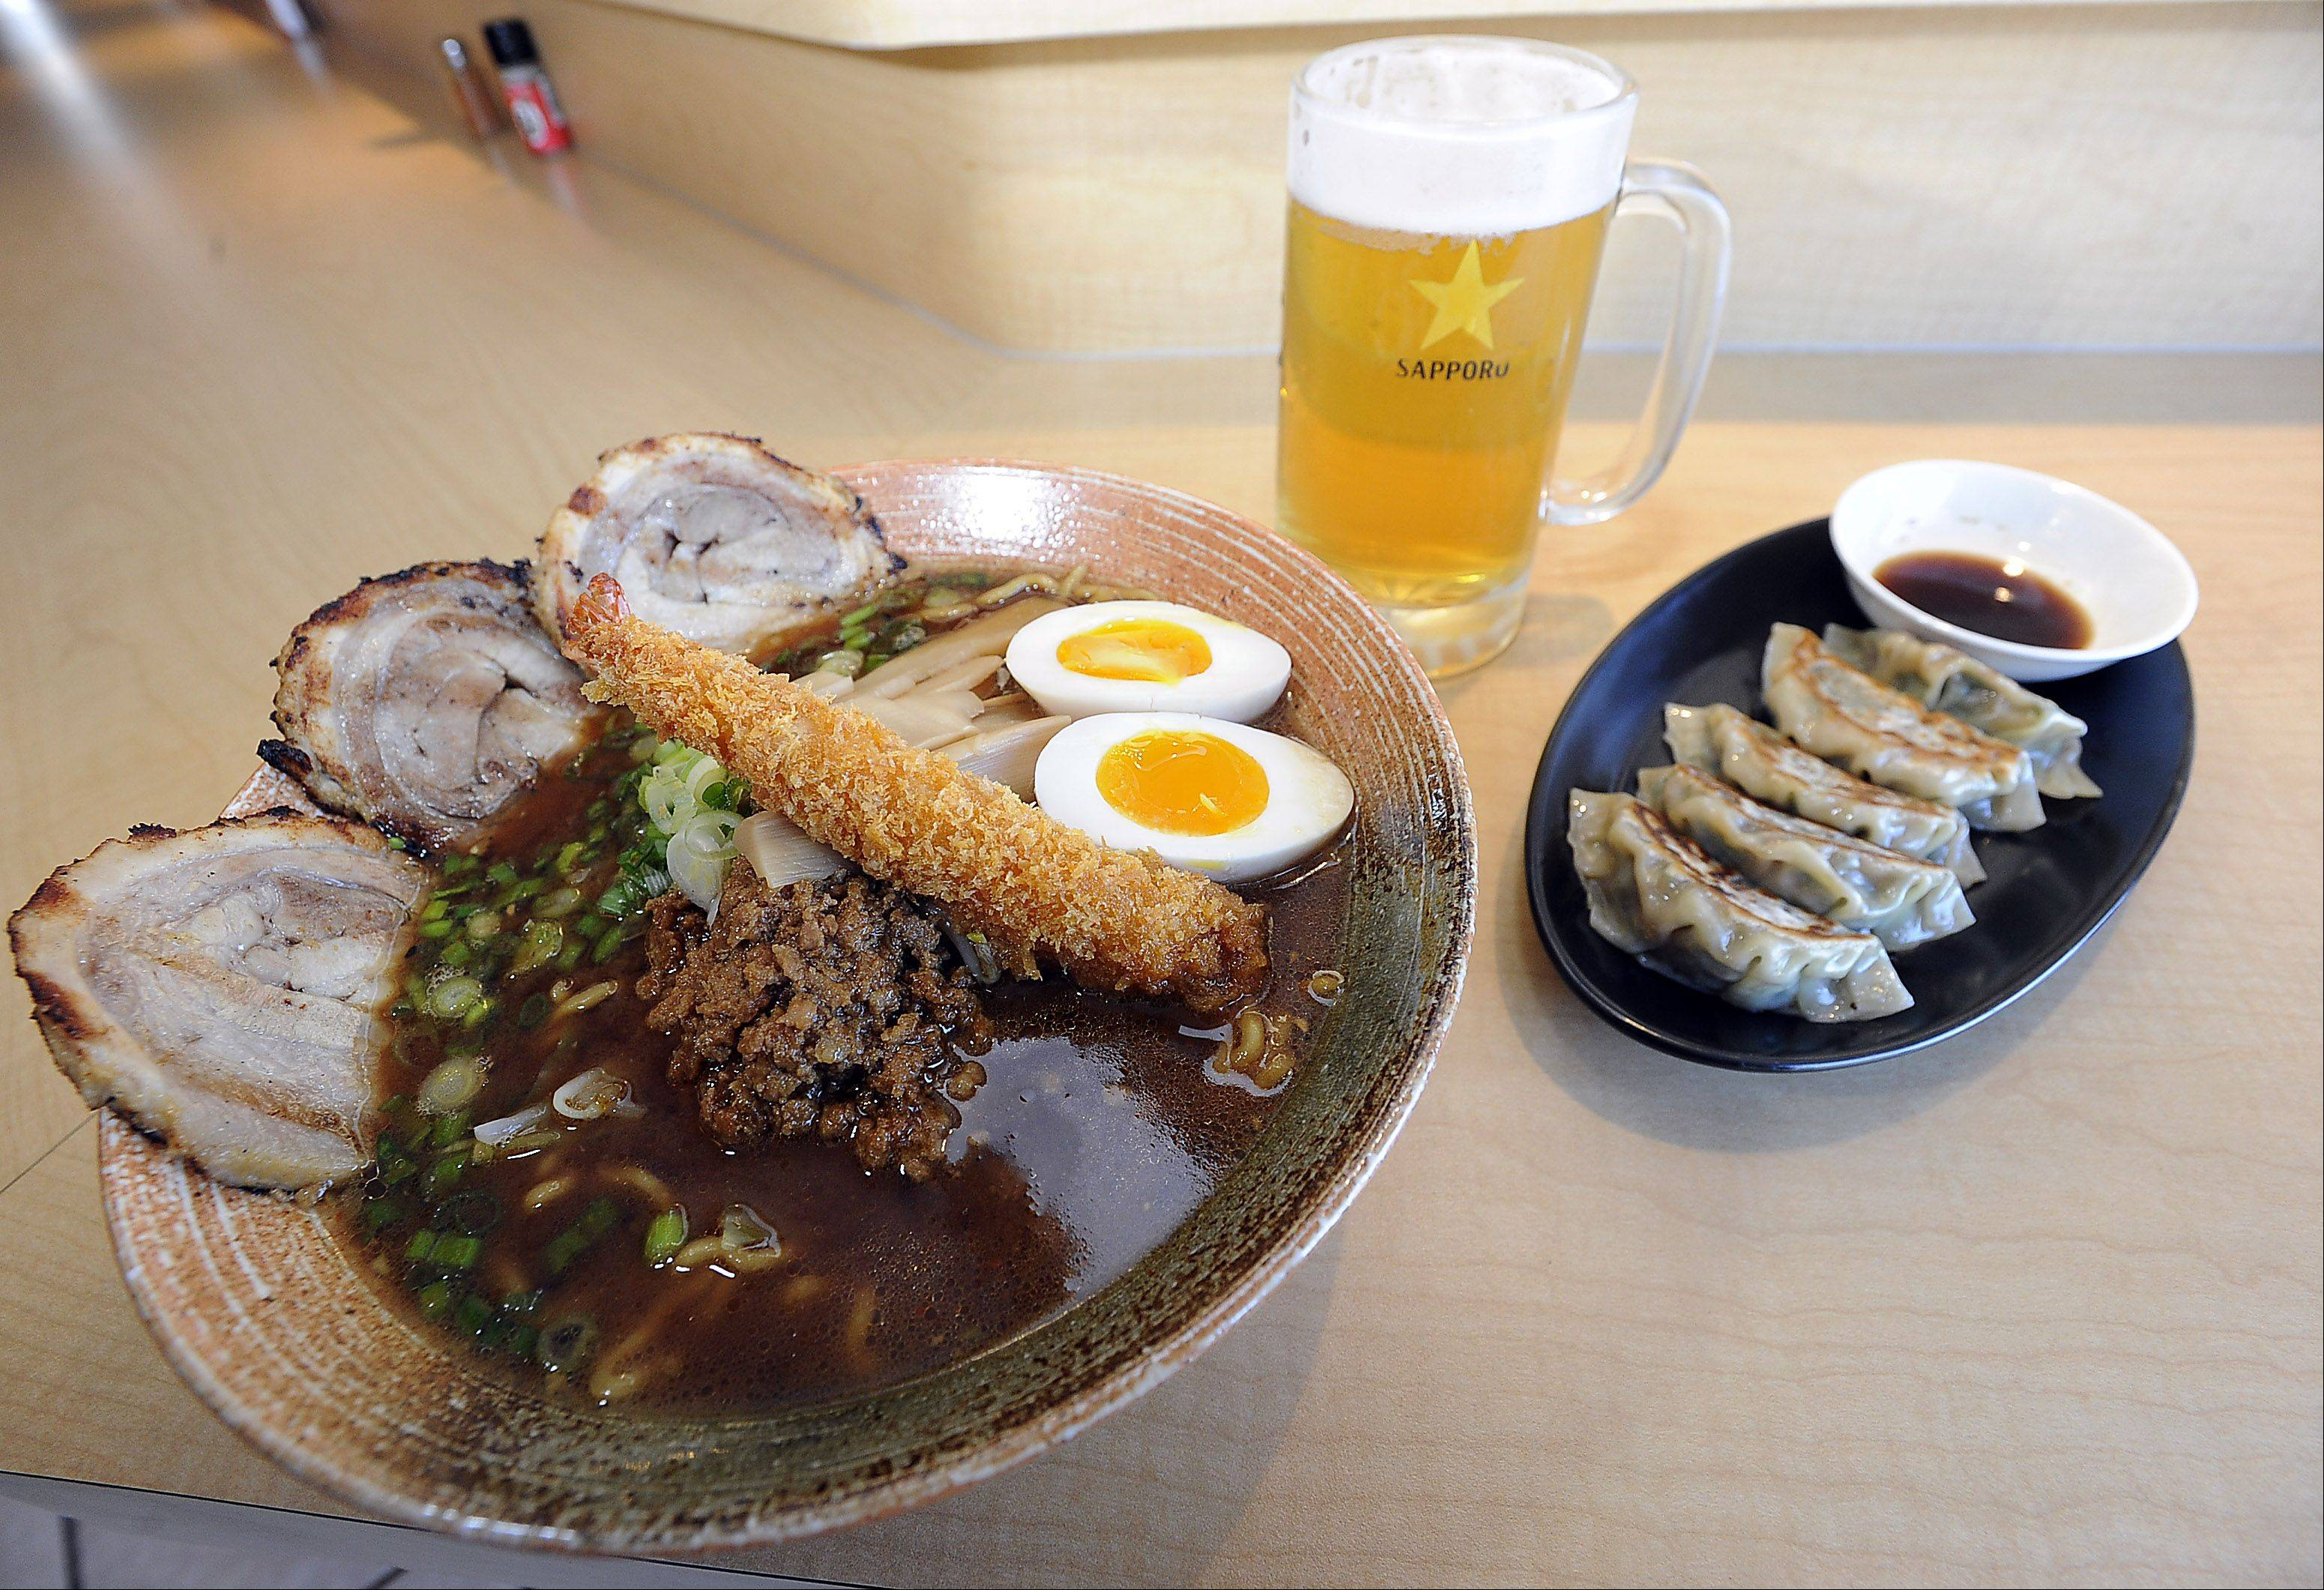 Bowled over: Ramen Misoya's noodle dishes winning fans